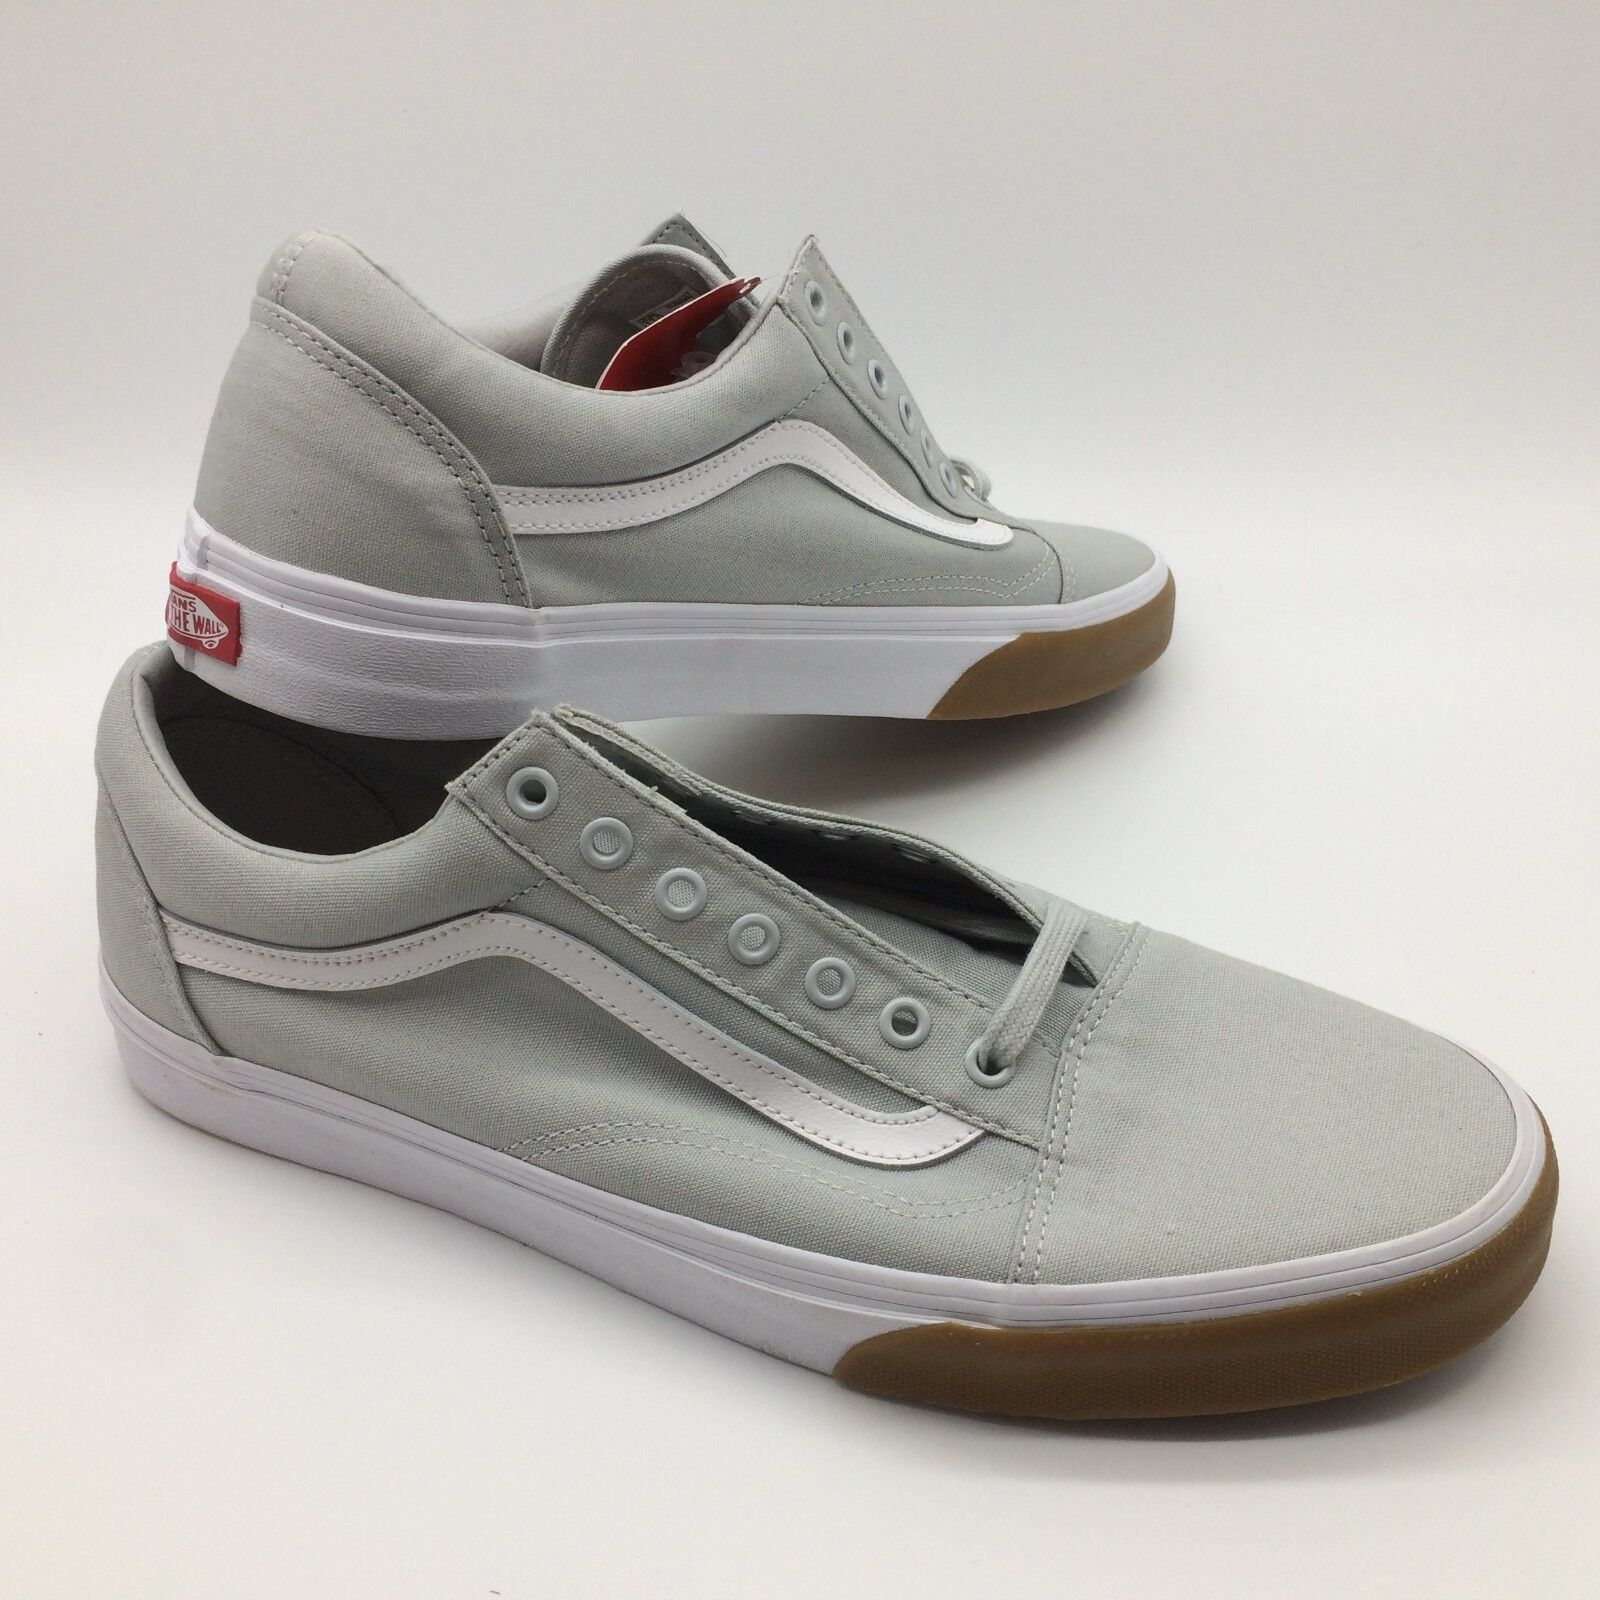 Vans Men's shoes's  Old Skool  (Gum Bumper) GLCIERGRY TRW